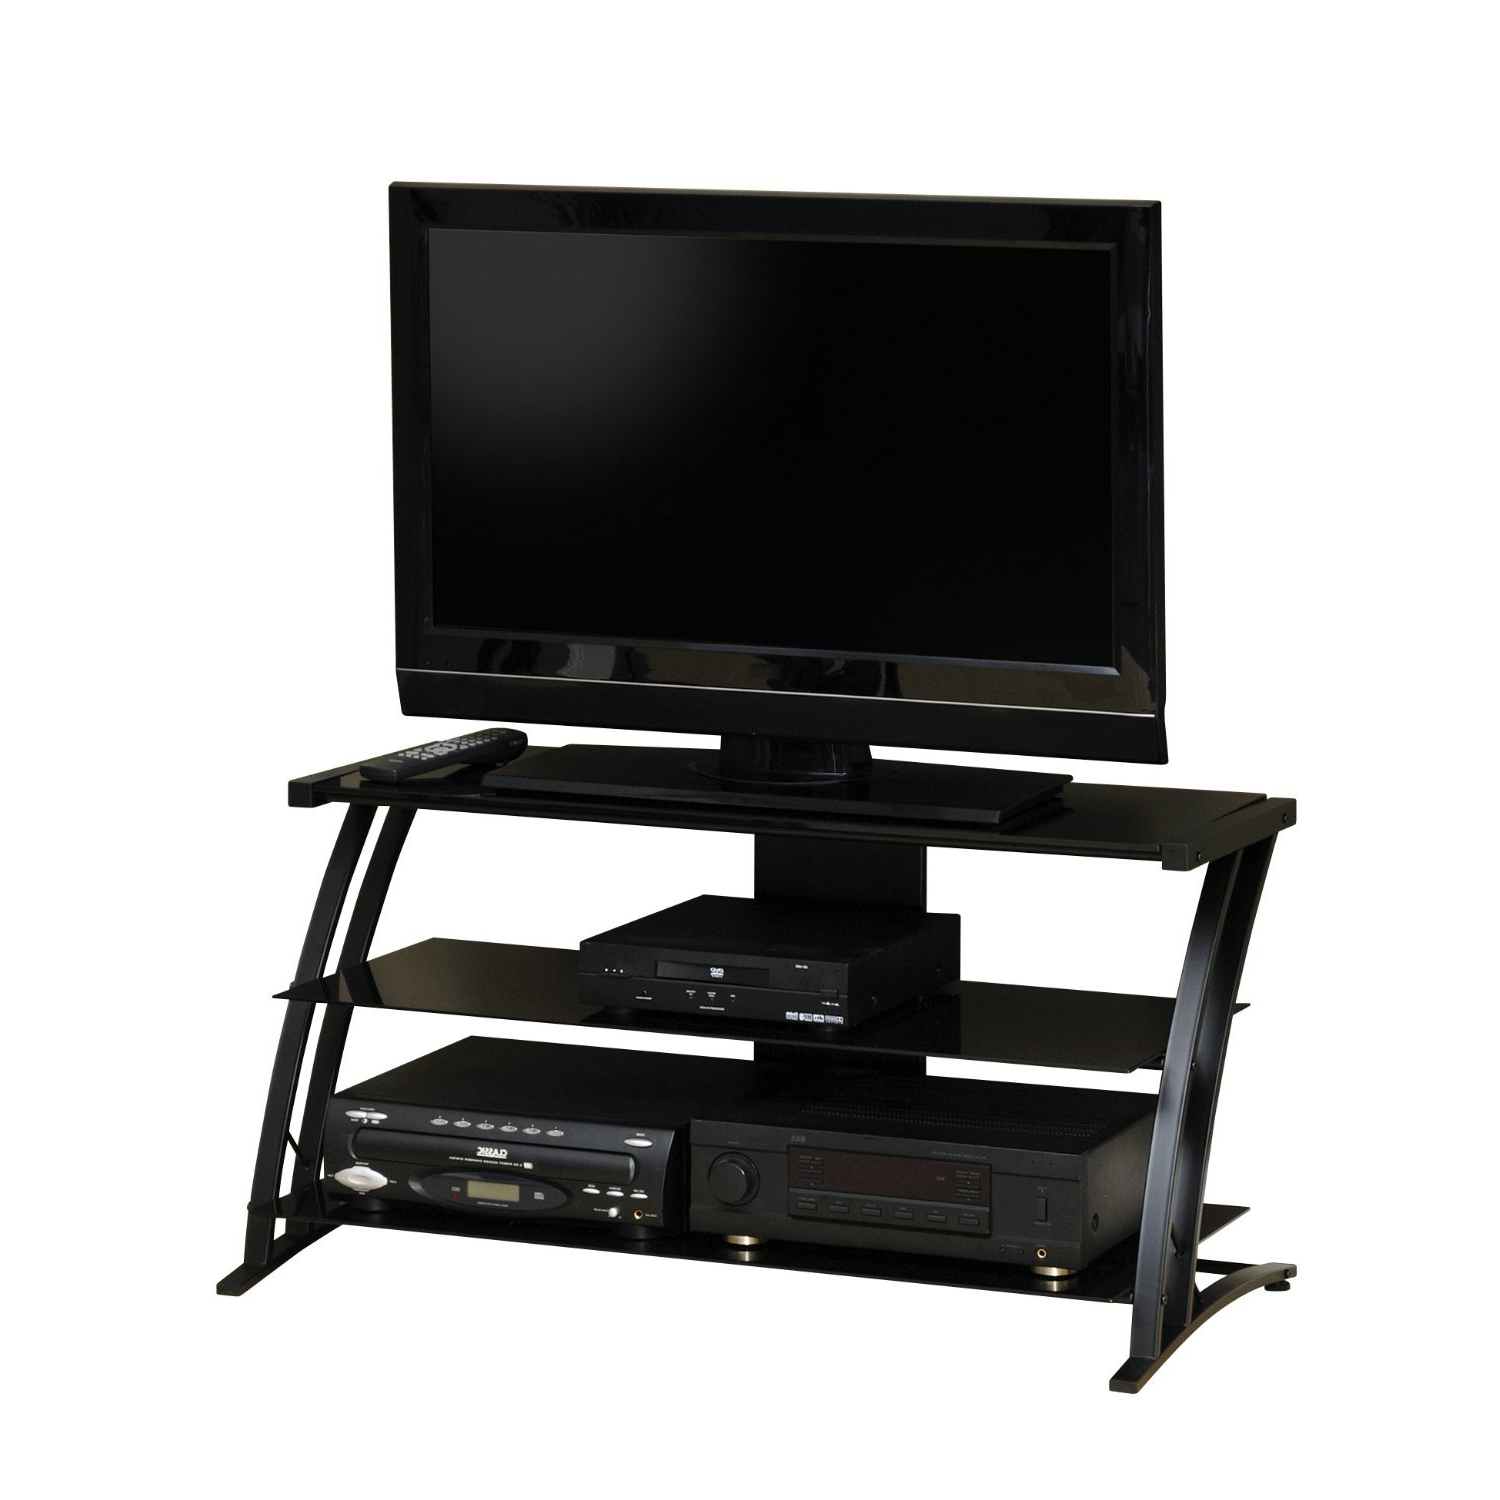 Most Recently Released Tv Stand On Sale Corner Consoles Stands Wall Cabinet Sauder Altra In Flat Screen Tv Stands Corner Units (View 13 of 20)